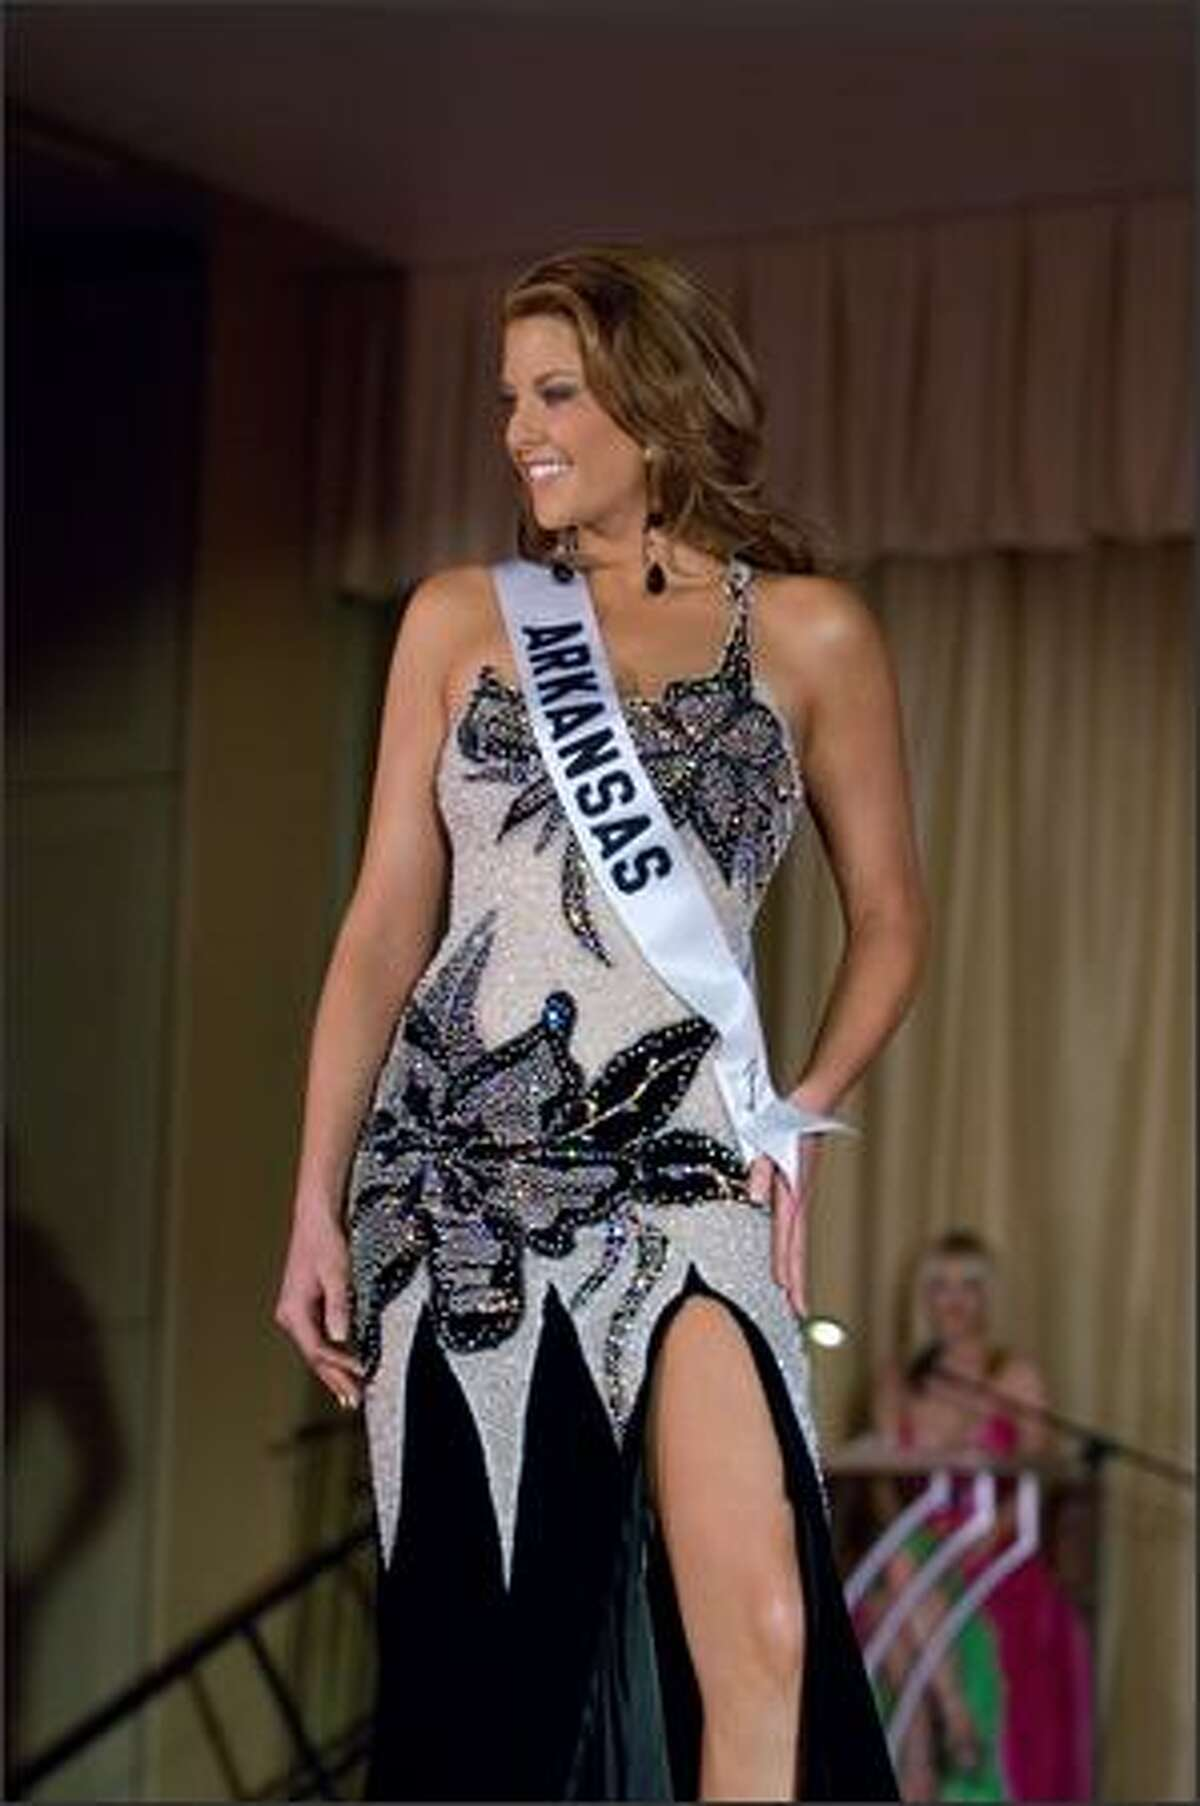 Kelly George, Miss Arkansas USA 2007, competes in an evening gown of her choice during the Miss USA 2007 Preliminary Event at the Wilshire Grand Hotel in Los Angeles on March 19. Each contestant was judged by a panel of judges in individual interview, swimsuit and evening gown categories. The scores will be tallied and the top 15 contestants will be announced during the NBC telecast on March 23.